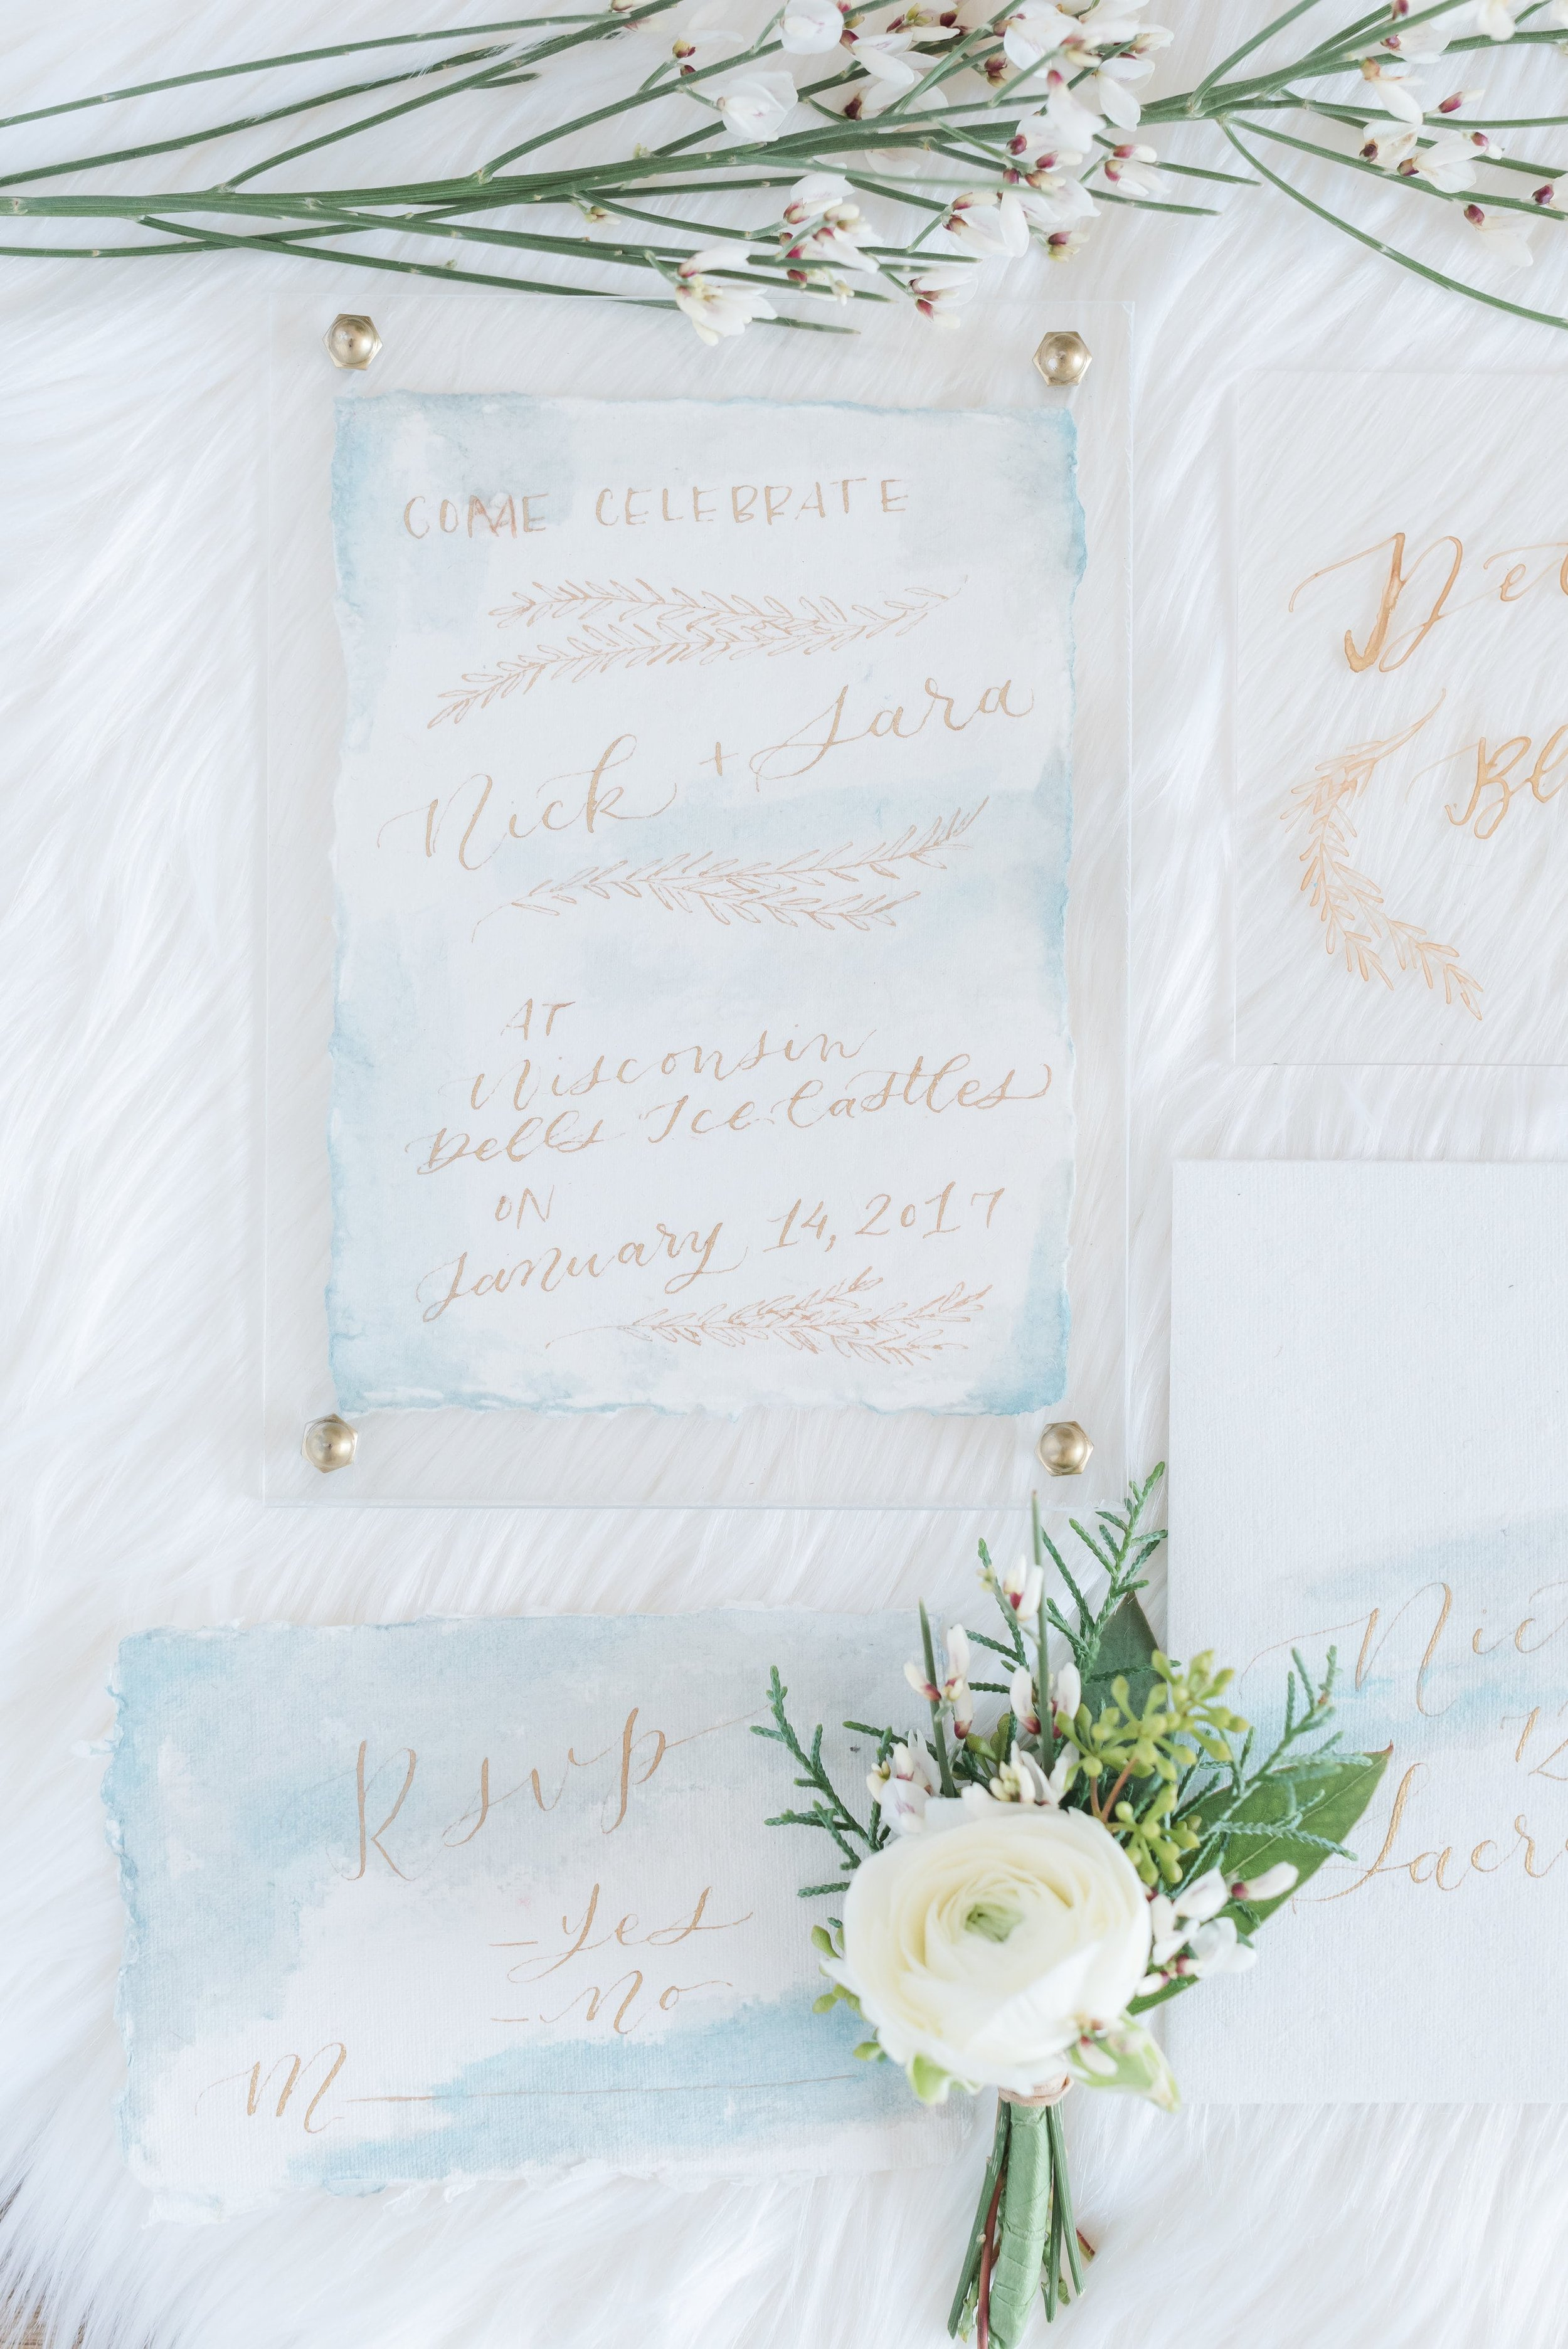 Winter Styled Shoot at the Ice Castles-Ice Castles-0027-min.jpg